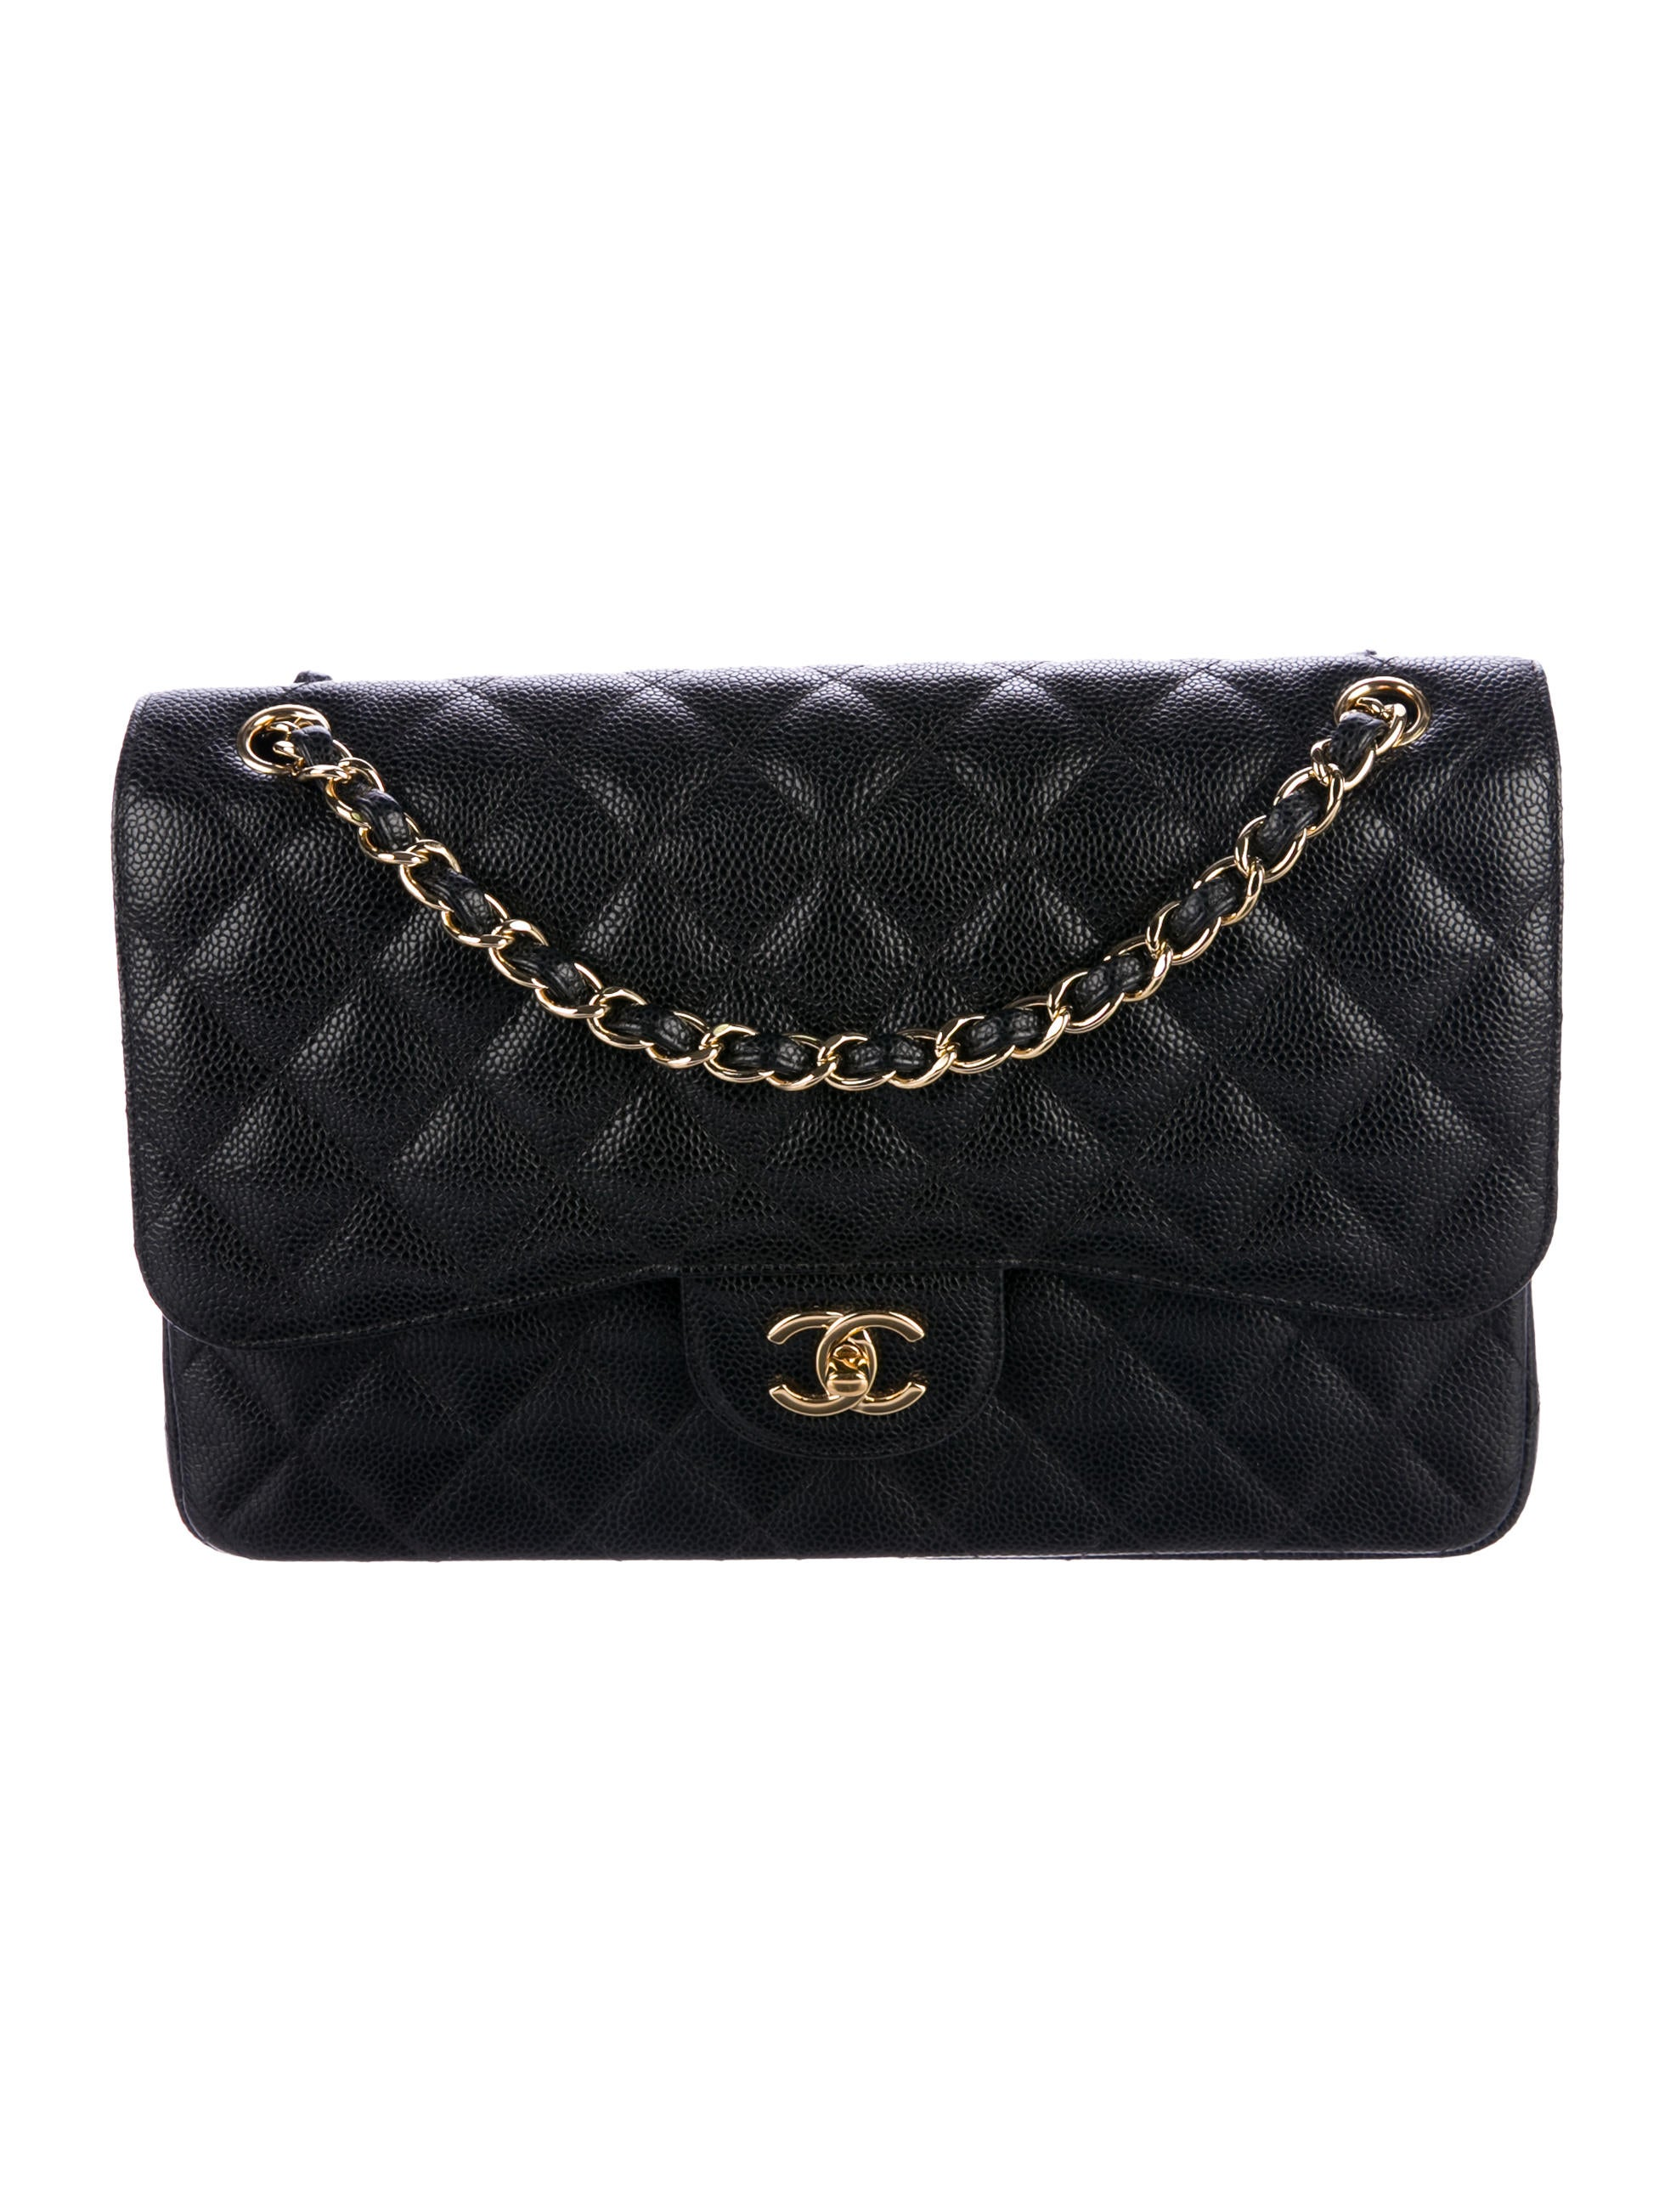 23ce924dbb0a Chanel Caviar Shopping Bag 2015 | Stanford Center for Opportunity ...